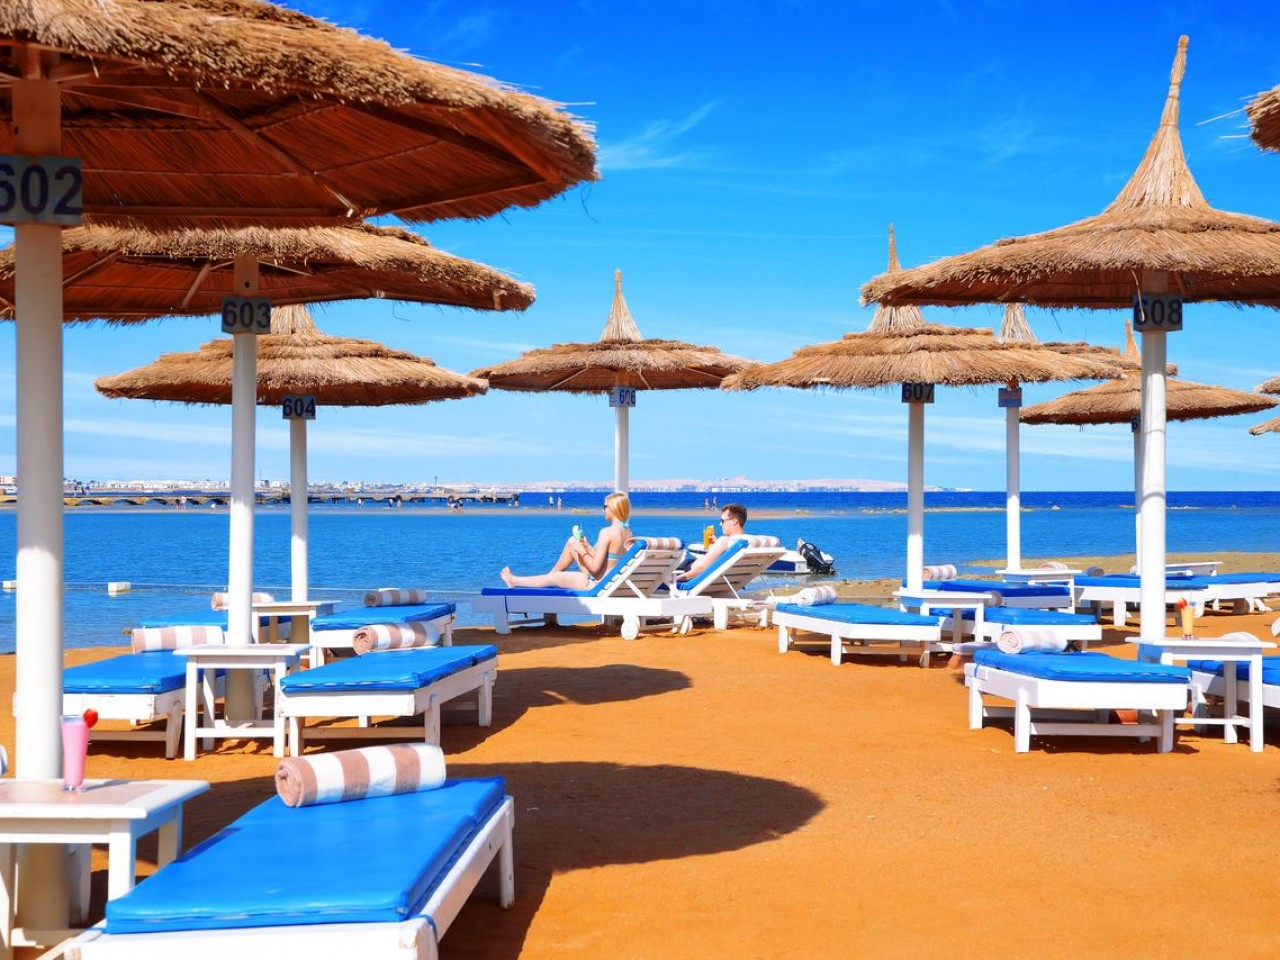 DANA BEACH RESORT, Hurghada, Egypt